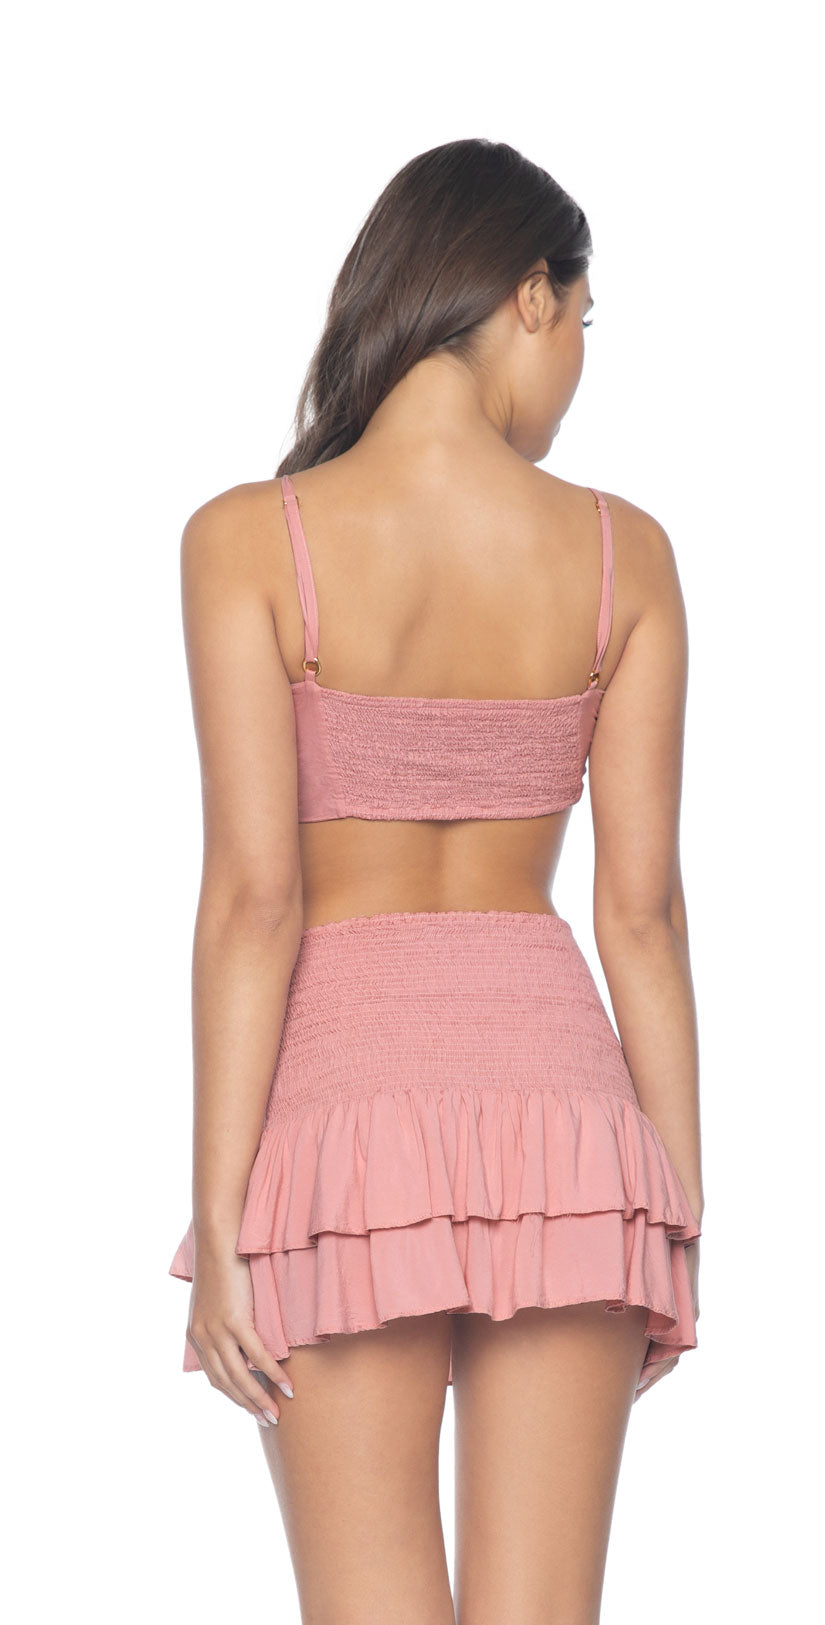 PilyQ Dusty Rose Cleo Tie Top back